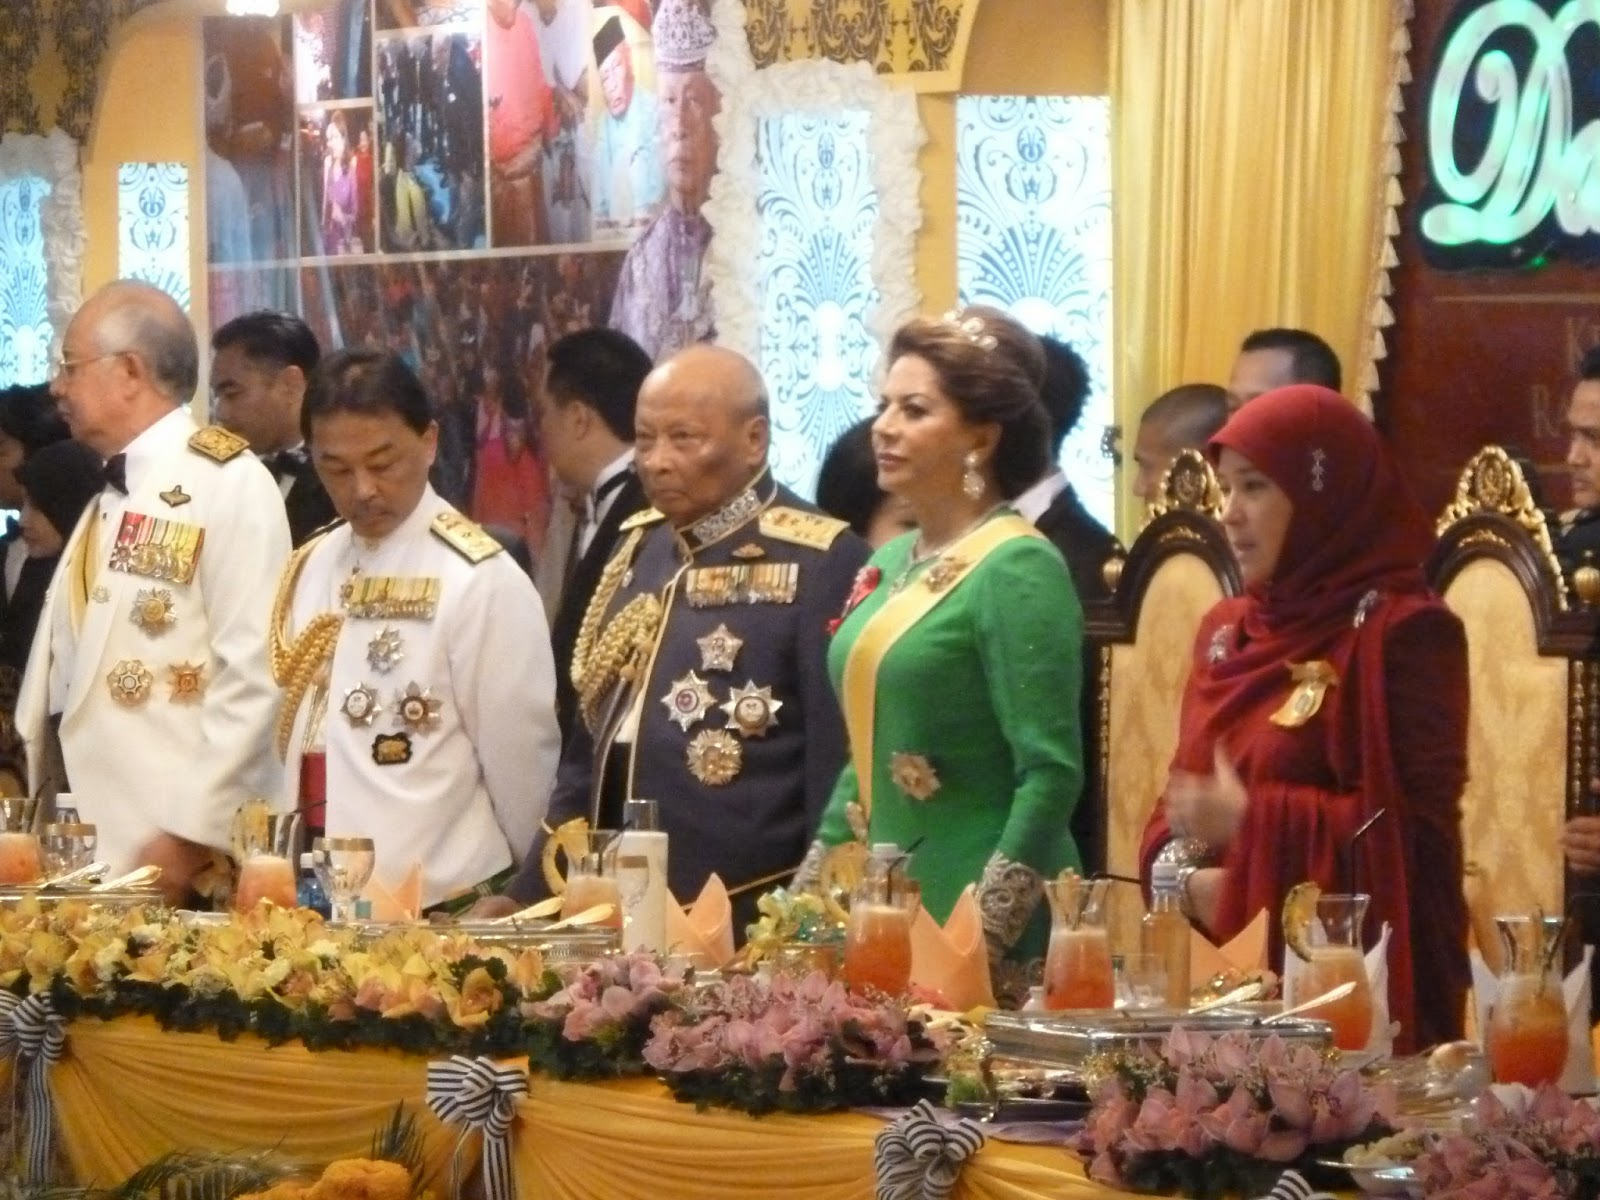 kee hua chee live arrival of his royal highness sultan